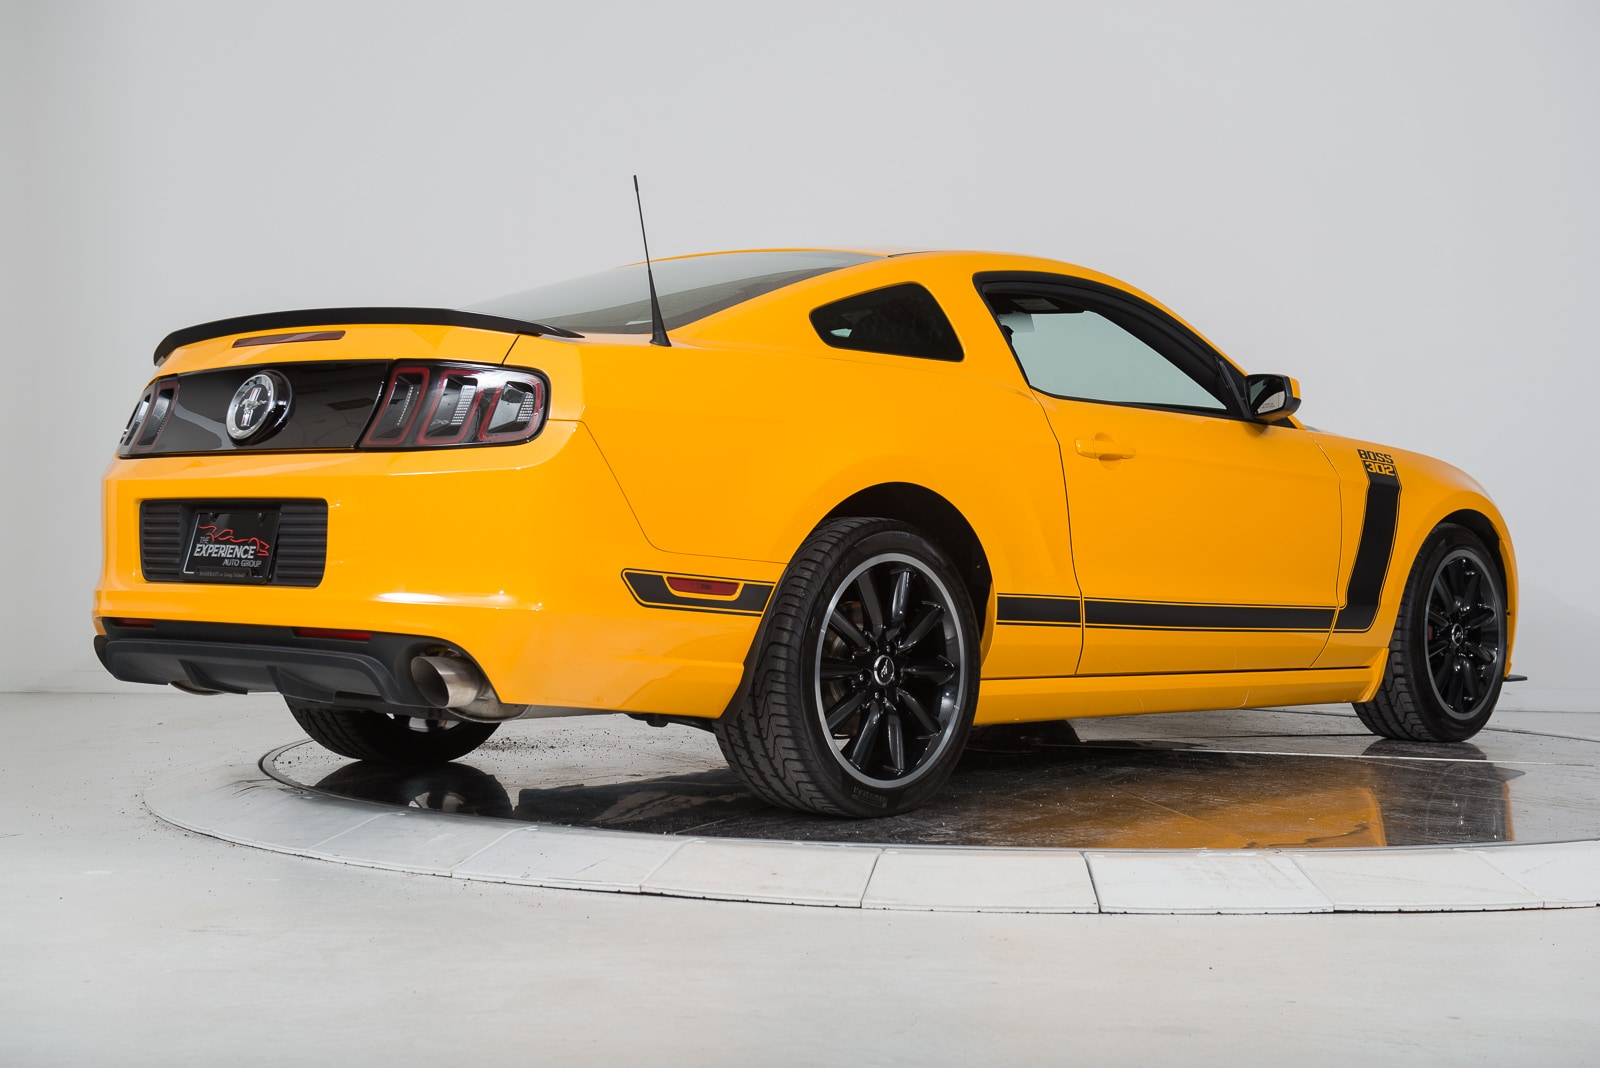 used 2013 ford mustang boss 302 for sale plainview near. Black Bedroom Furniture Sets. Home Design Ideas